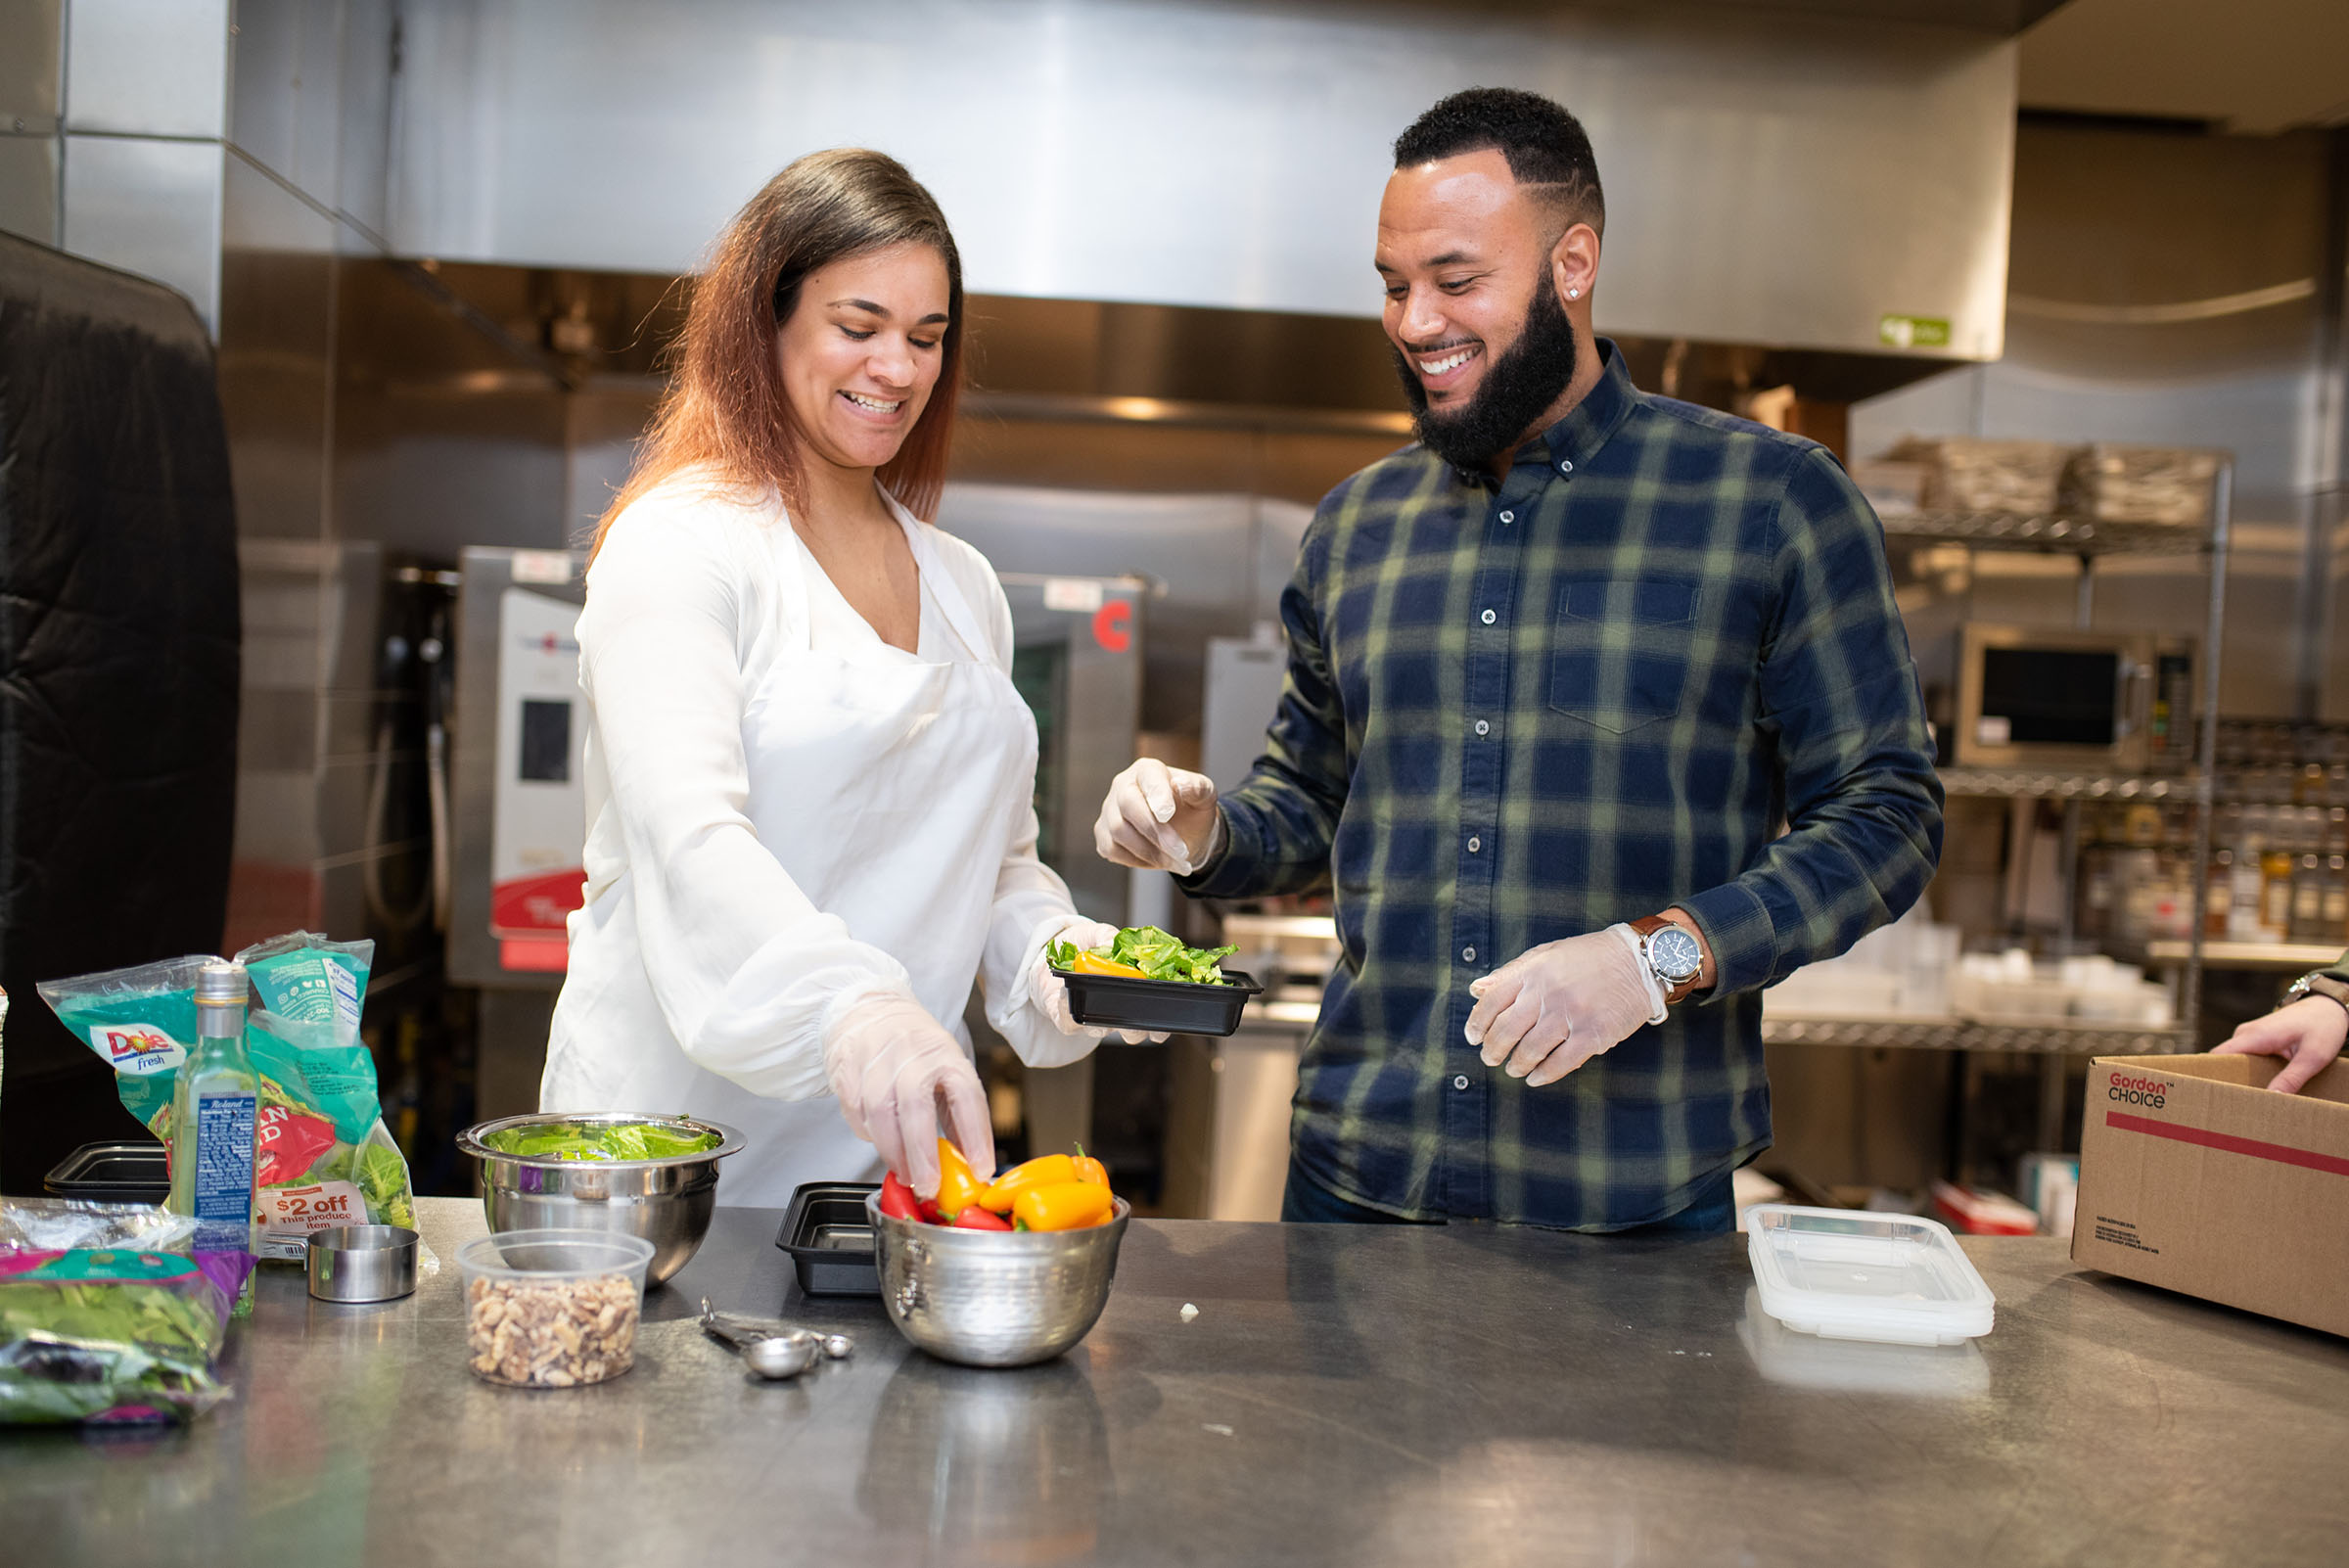 Business owners prepare food in the kitchen